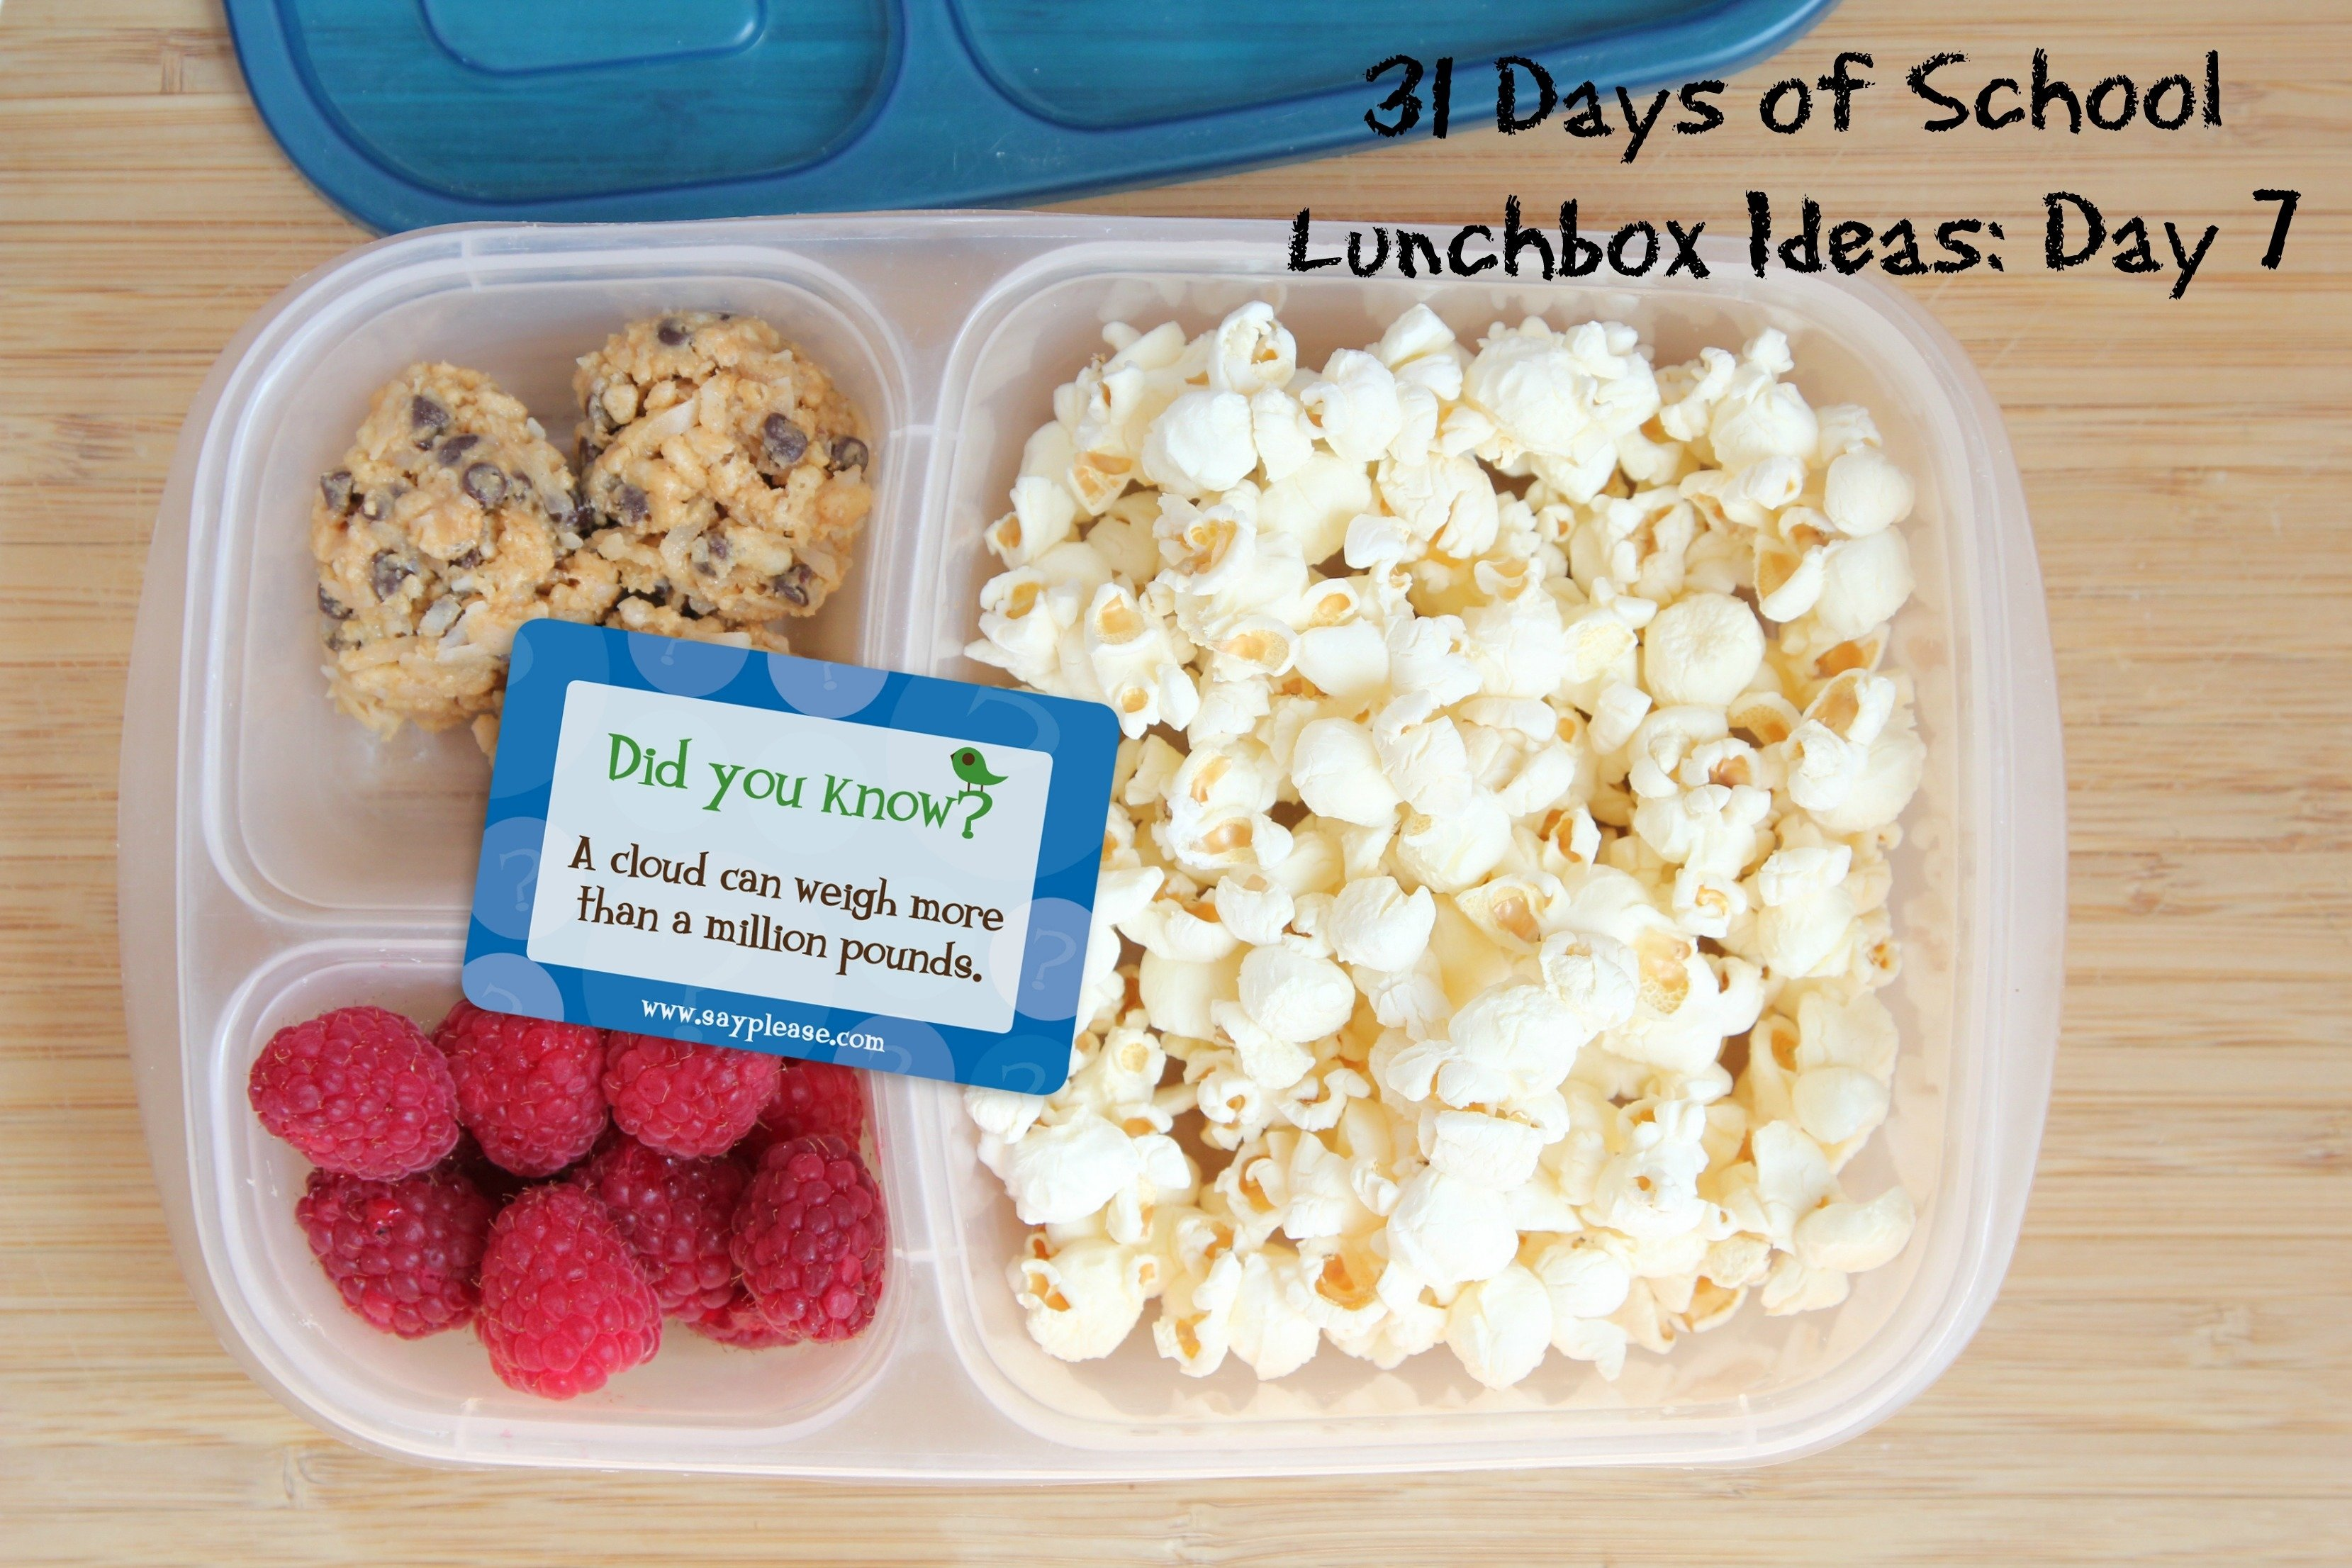 10 Awesome Food Day At Work Ideas 31 days of school lunchbox ideas day 7